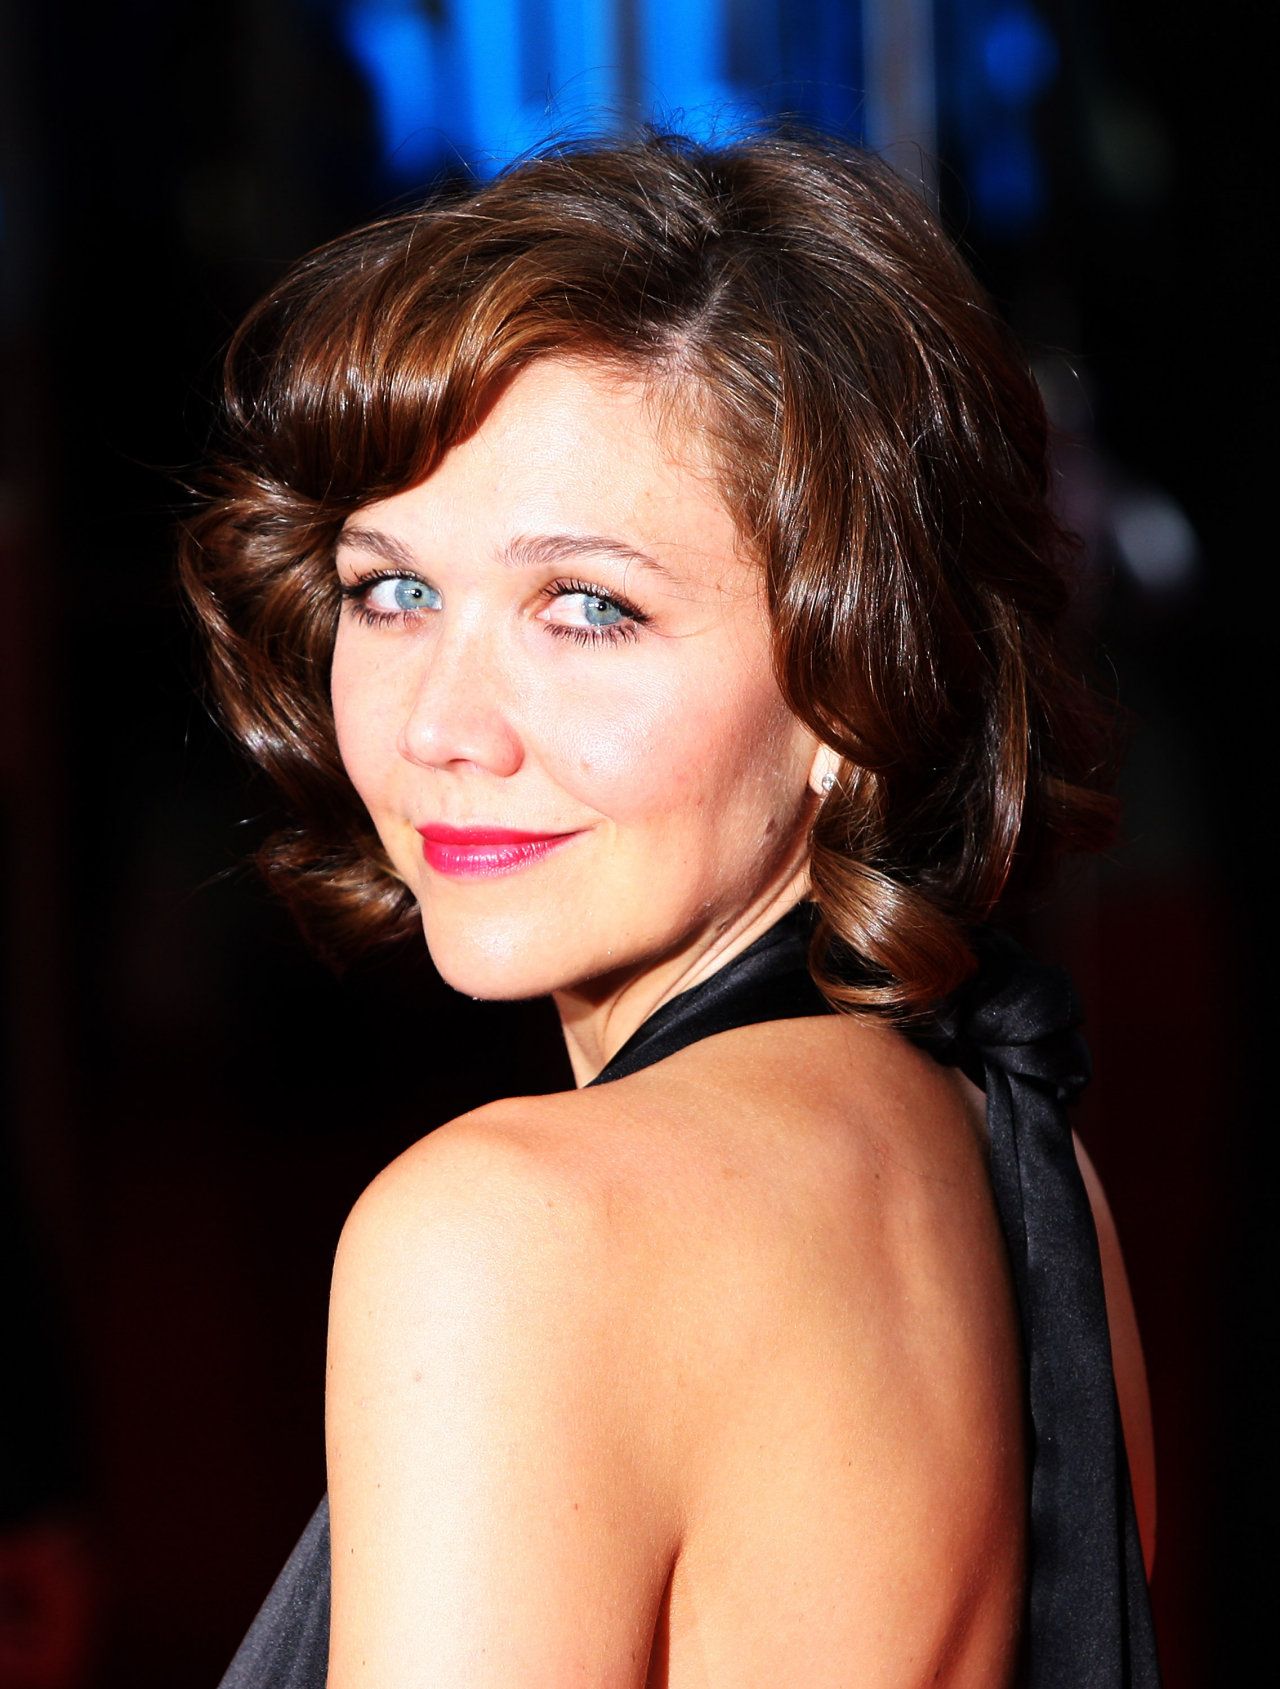 Maggie Gyllenhaal - Photo Actress